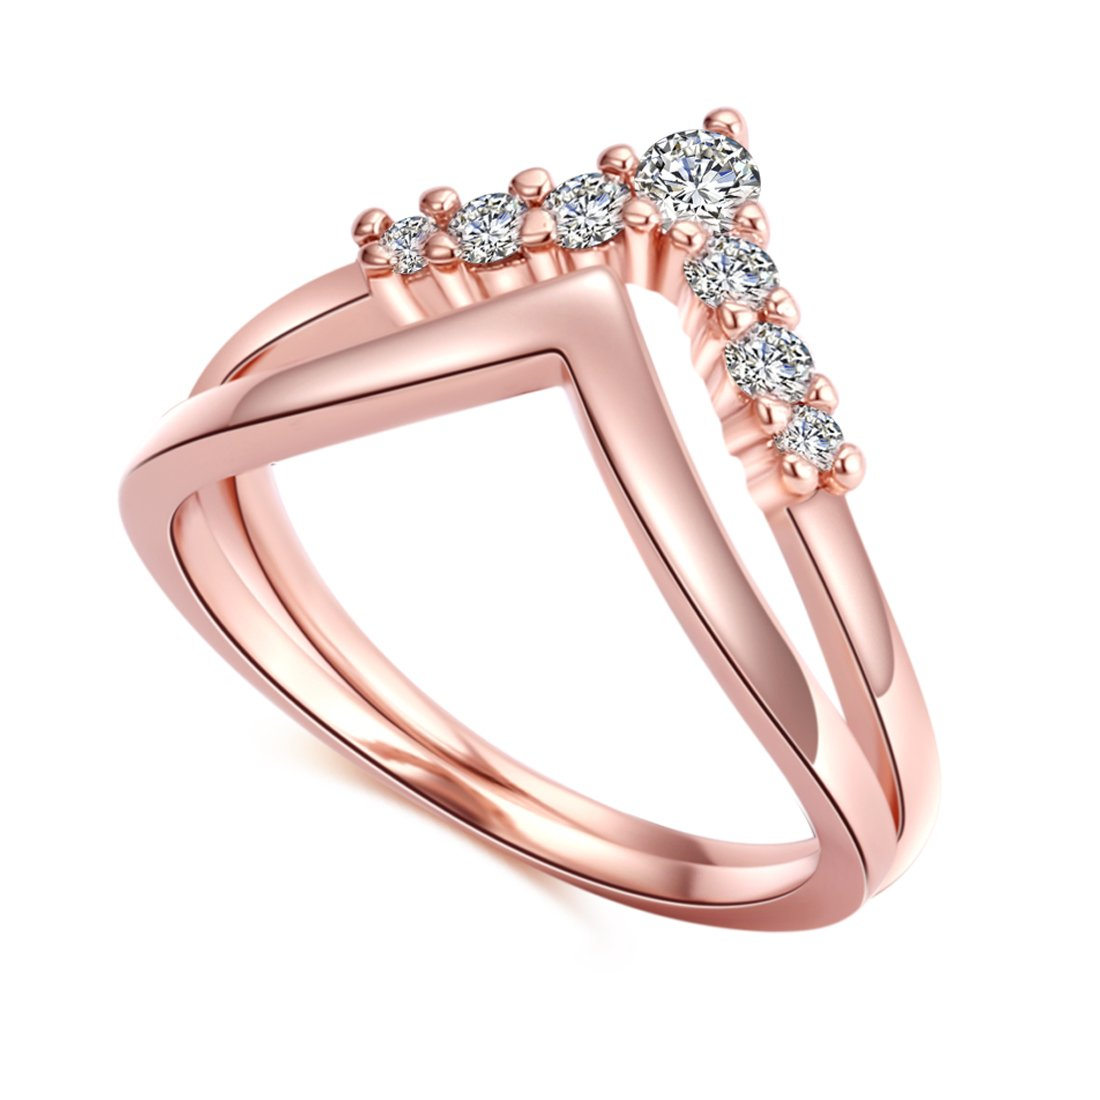 CRARINE Women's Stacking Ring Pave Cubic Zircon Eternity Promise Ring Flower Top Infinity Wedding Band - 1#Rose-gold (6)…